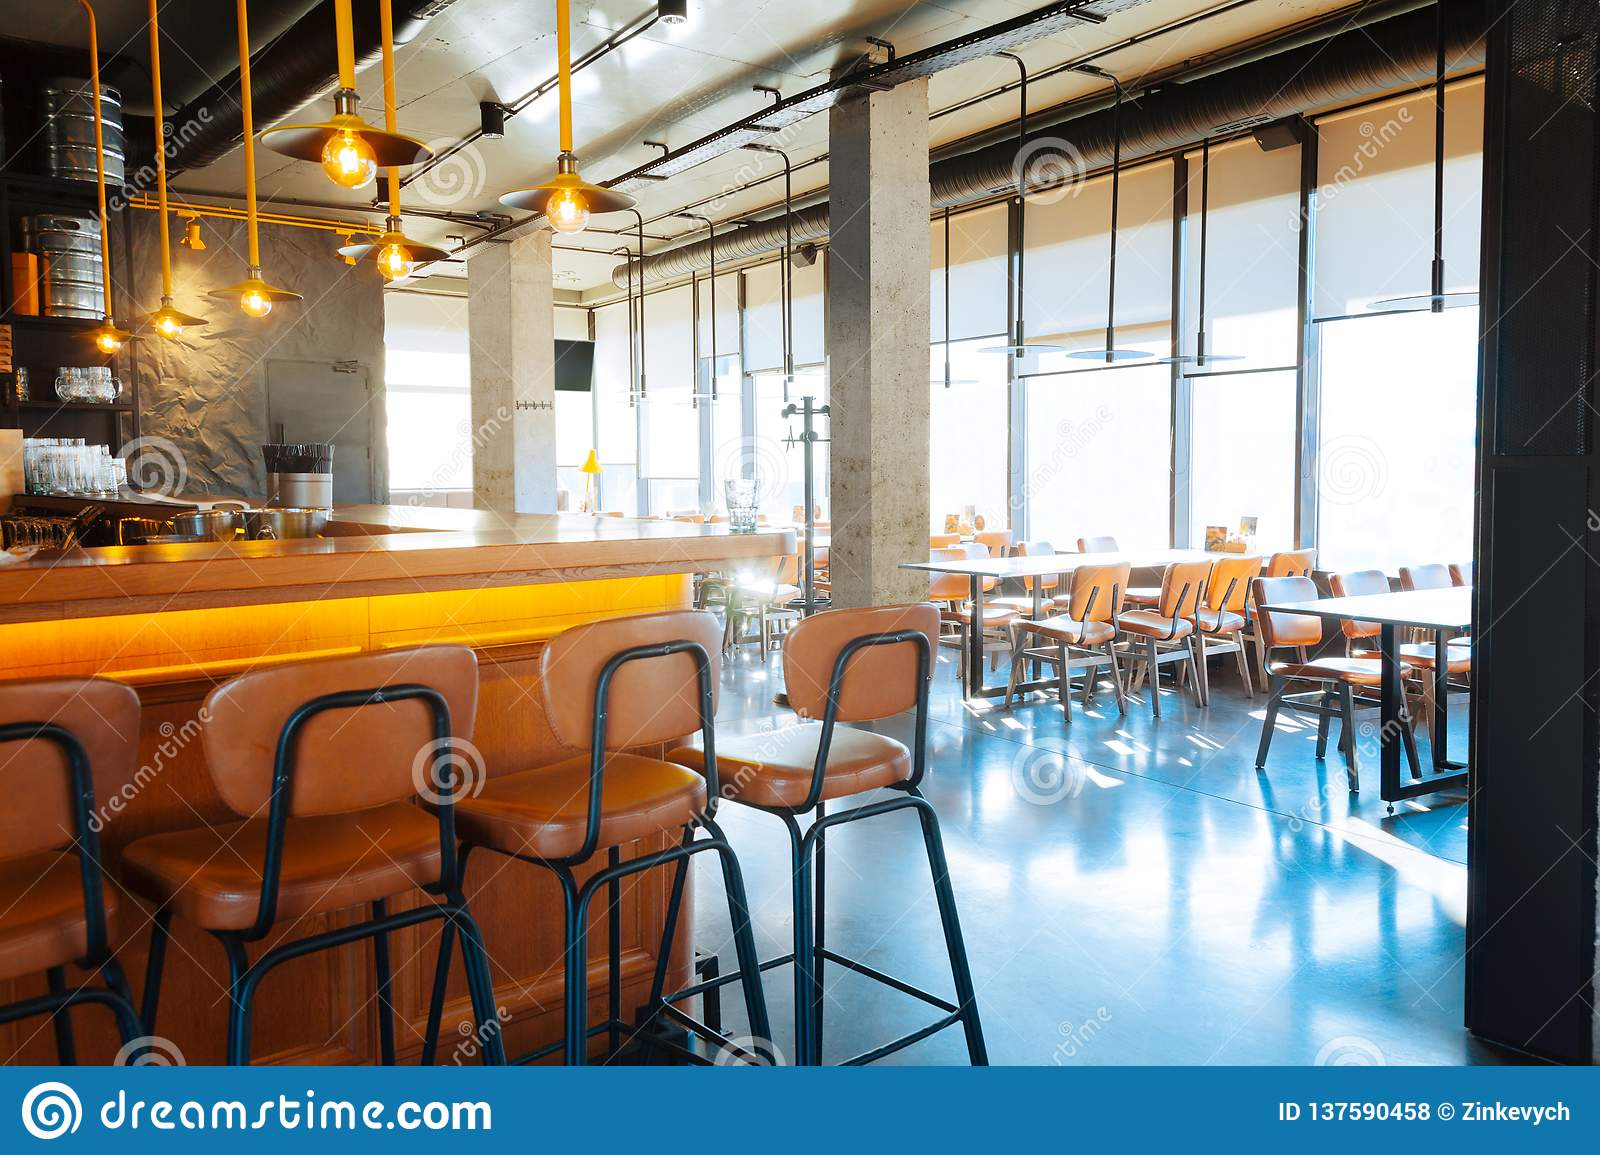 Nice Modern Bar Stand Situated Near Tables In Restaurant Stock Photo Image Of Fashionable Relaxation 137590458